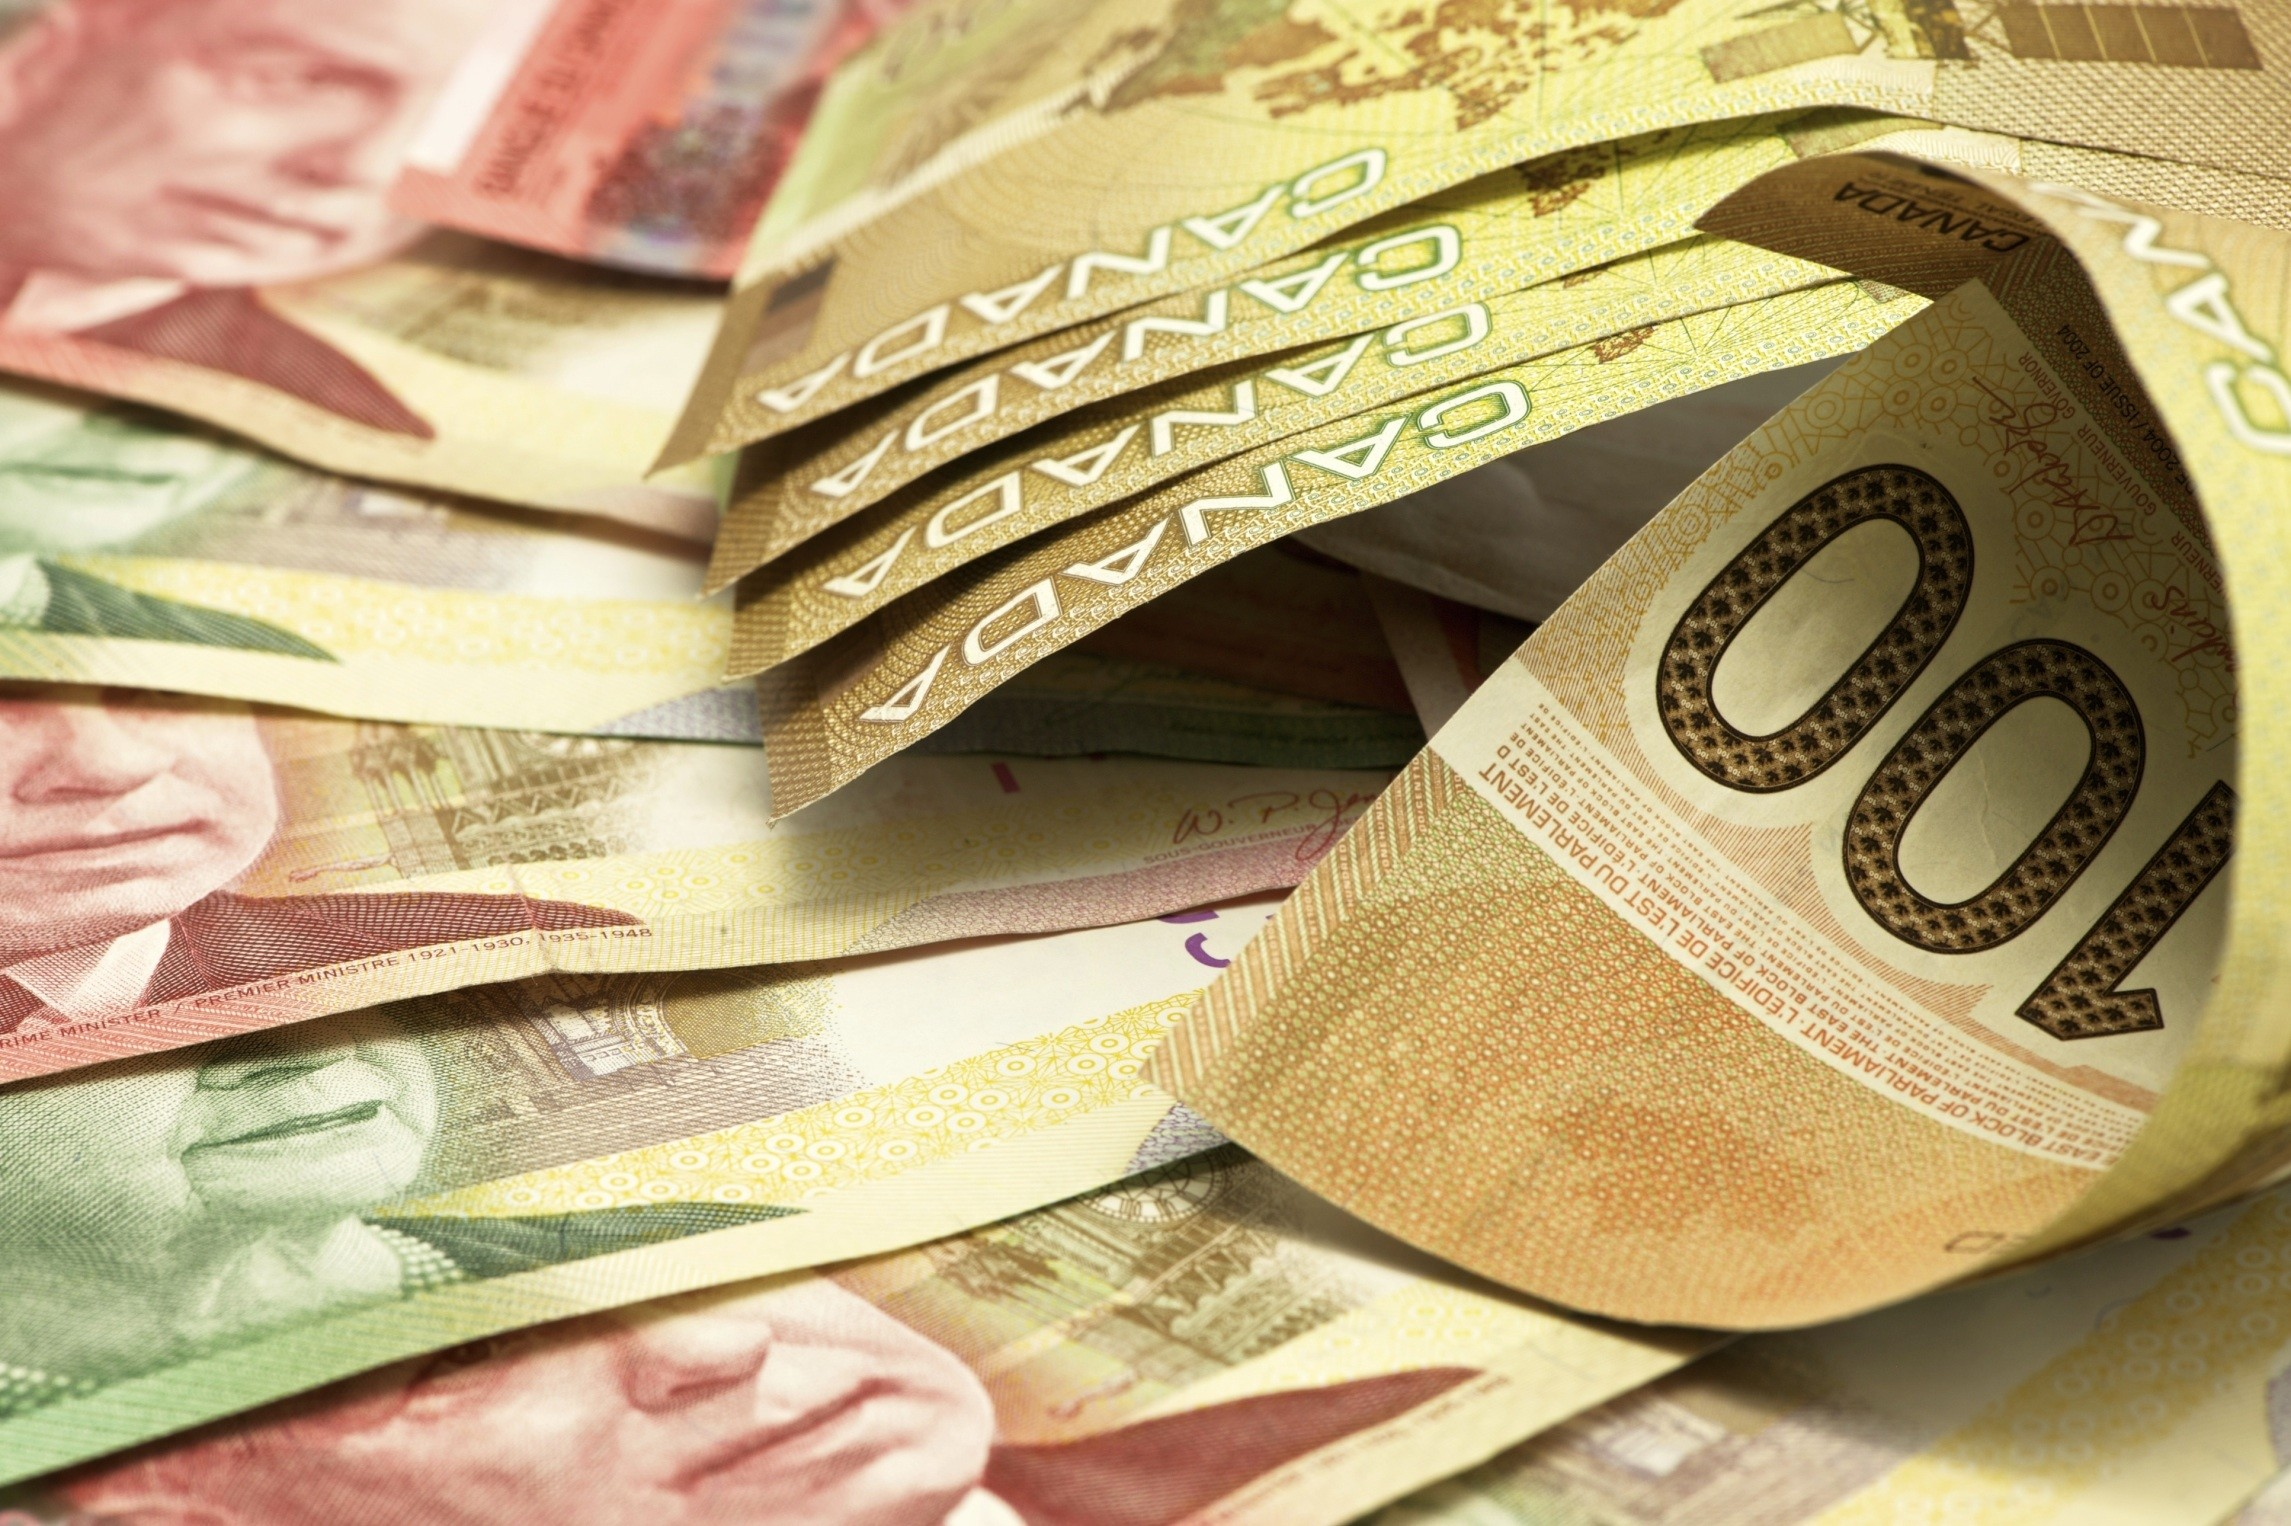 2291x1526 Canadian Money Banknotes Wallpapers | MoneyWallpapers.com